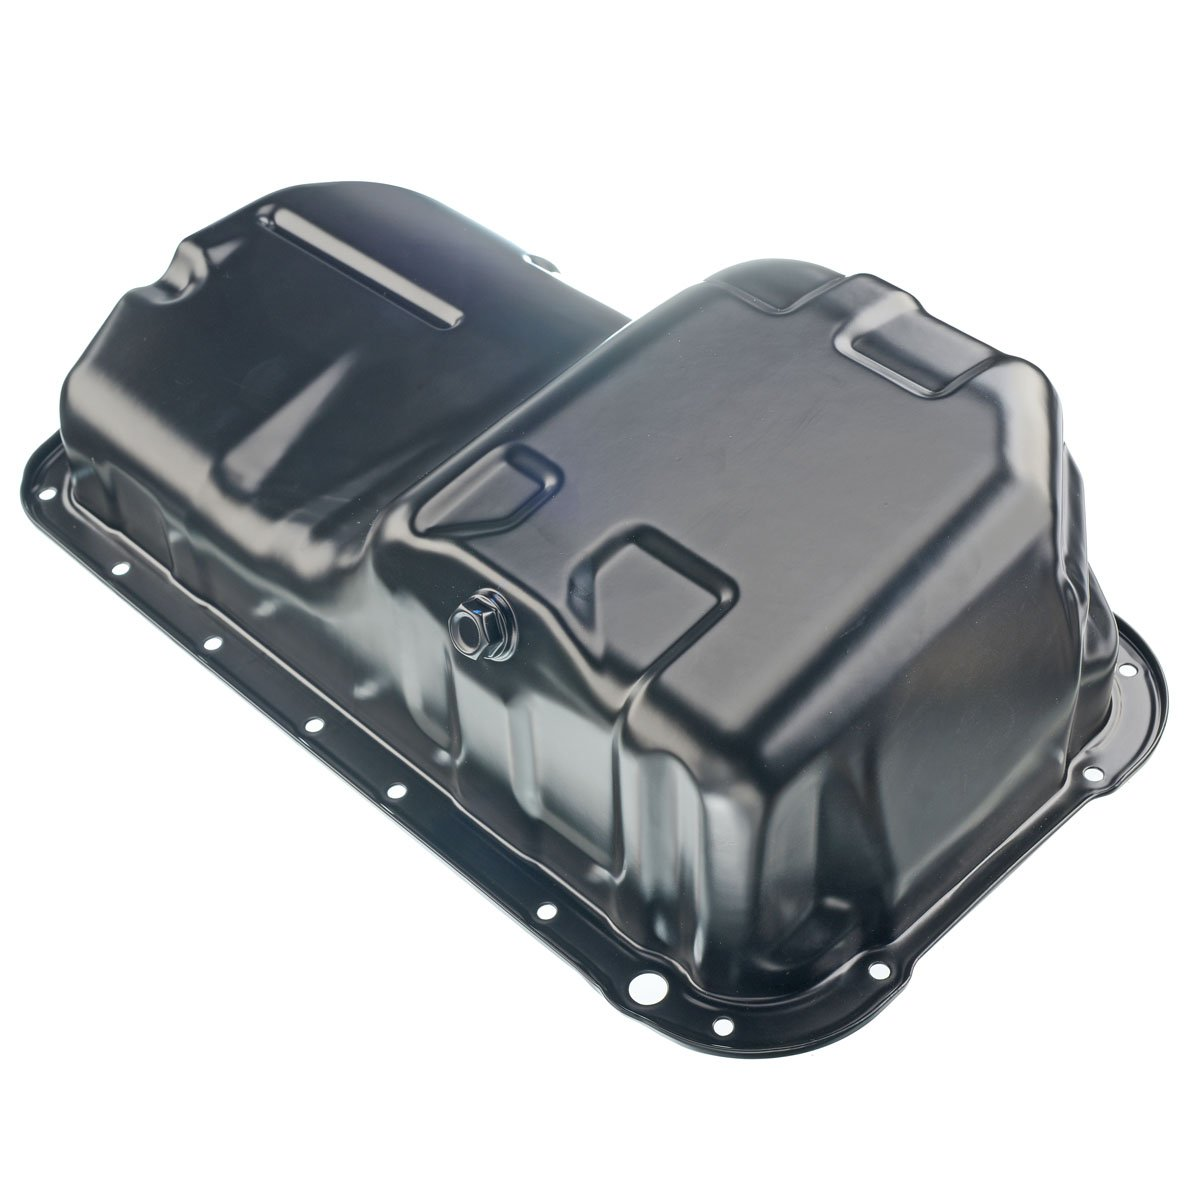 A-Premium Engine Oil Pan for Acura CL 1998 1999 Honda Accord 1998-2002 Odyssey 1998 l4 2.3L